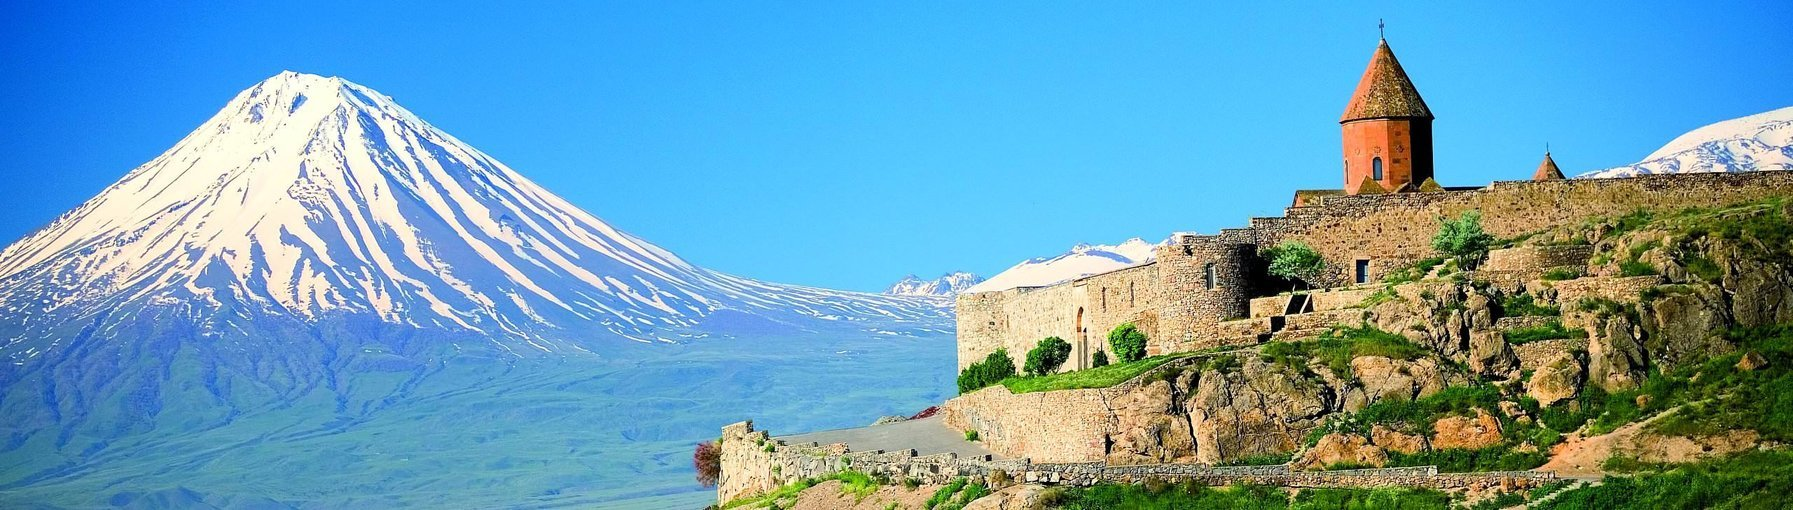 Best of Georgia & Armenia Trip - 6N|7D - Tour